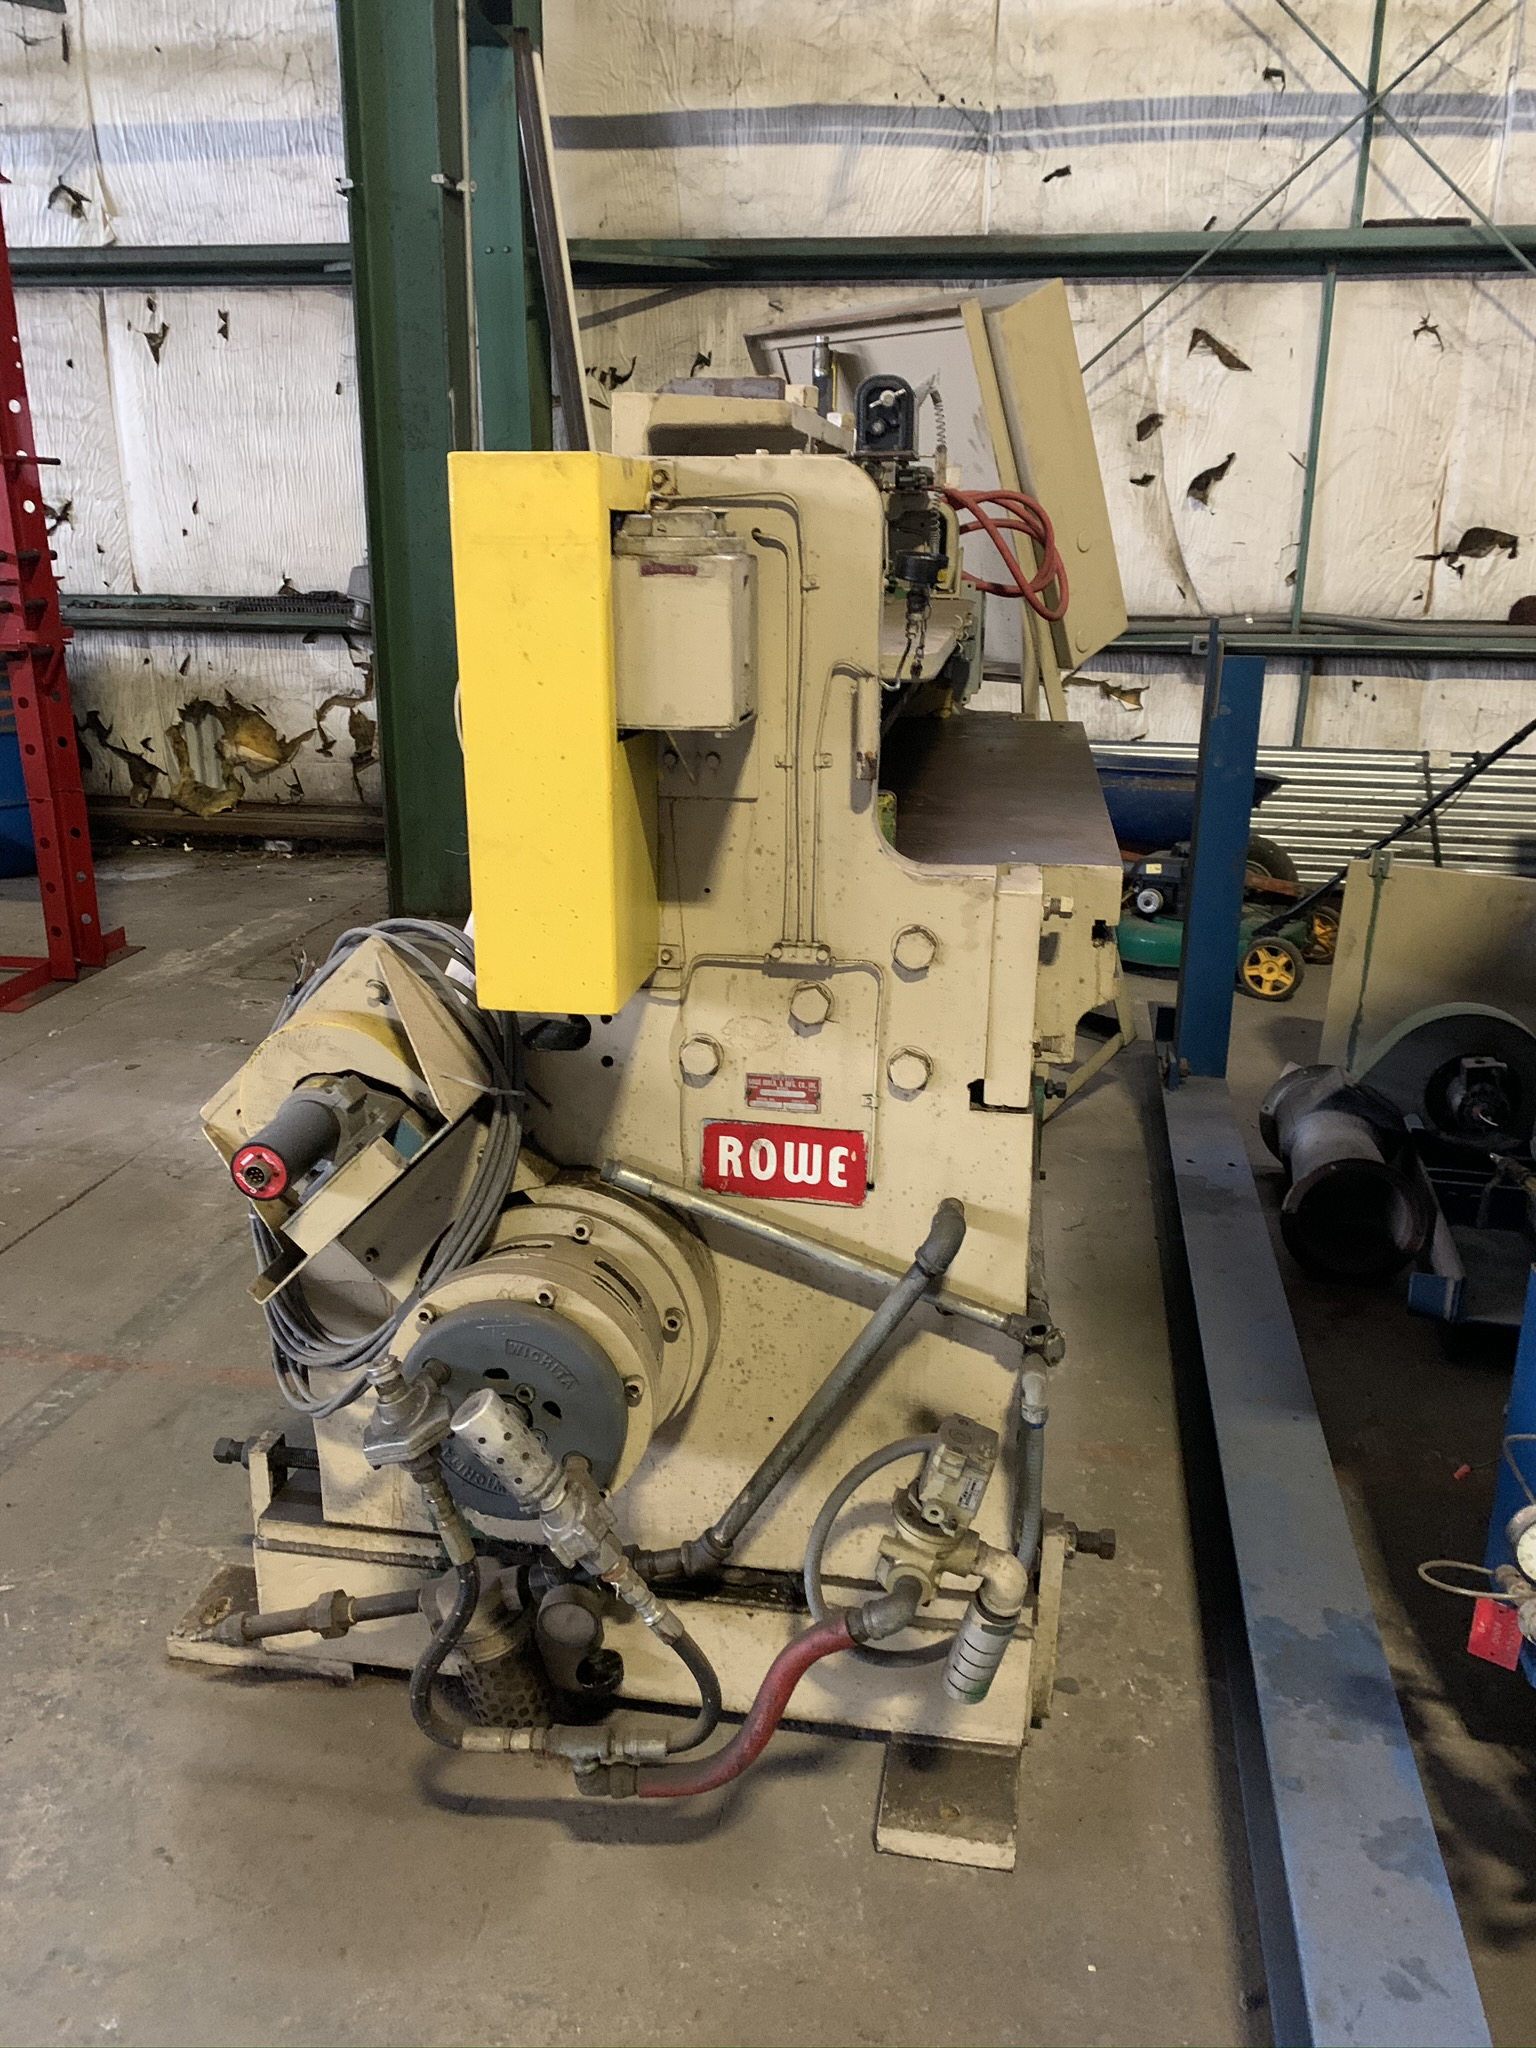 """WYSONG MODEL 1052 RKB LINE SHEAR; S/N P97-100, 52"""" WIDTH, AIR CLUTCH, BOW TIE BLADE, 15 HP 230/460 - Image 4 of 5"""